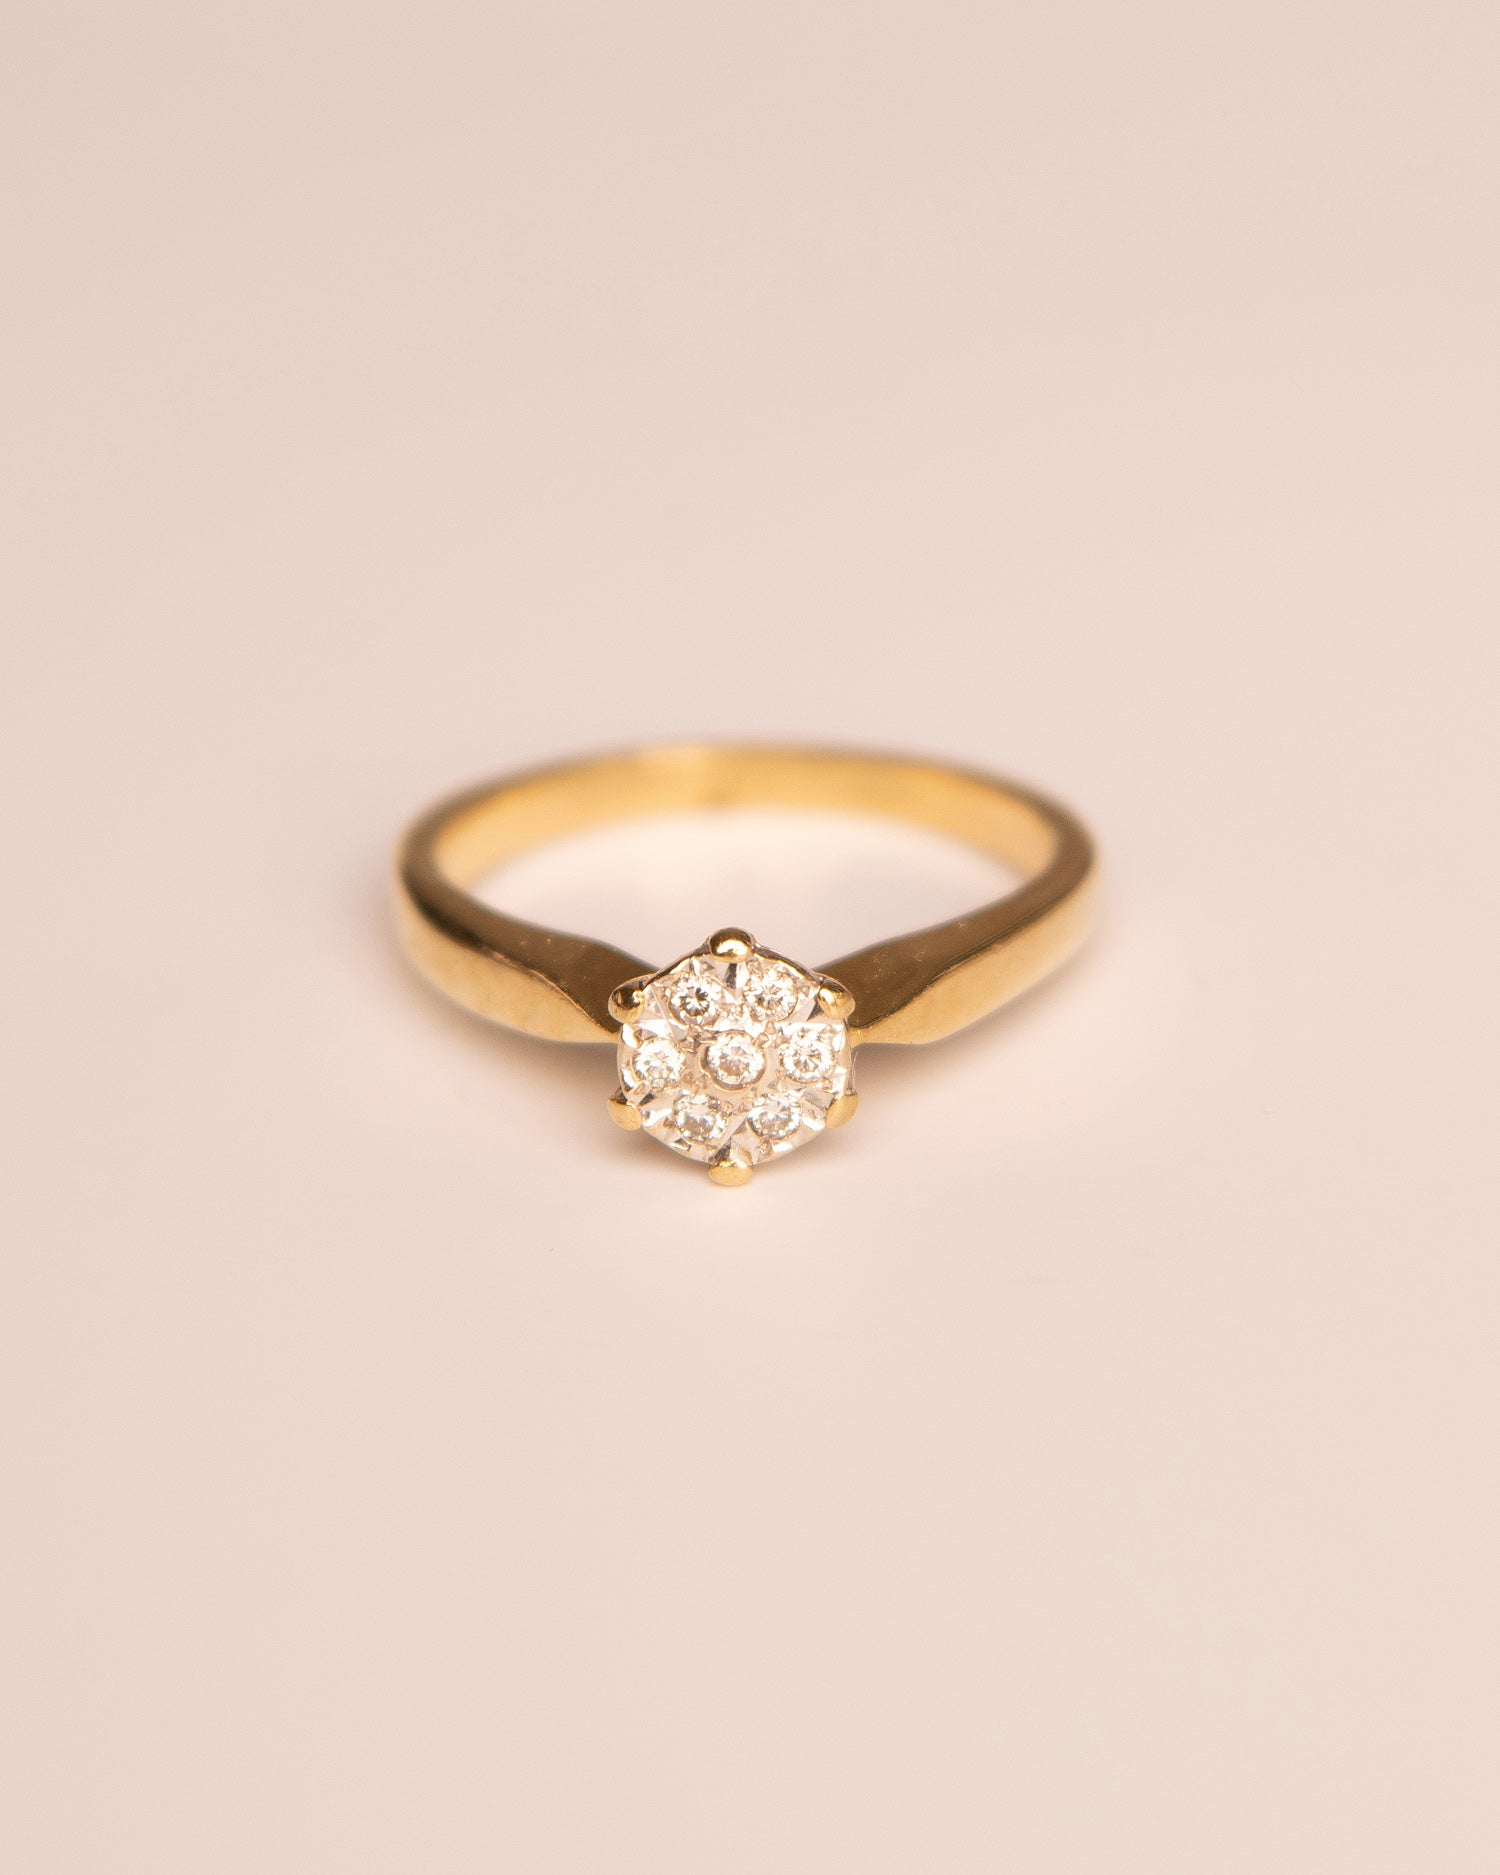 Image of Tess 9ct Gold Vintage Diamond Ring